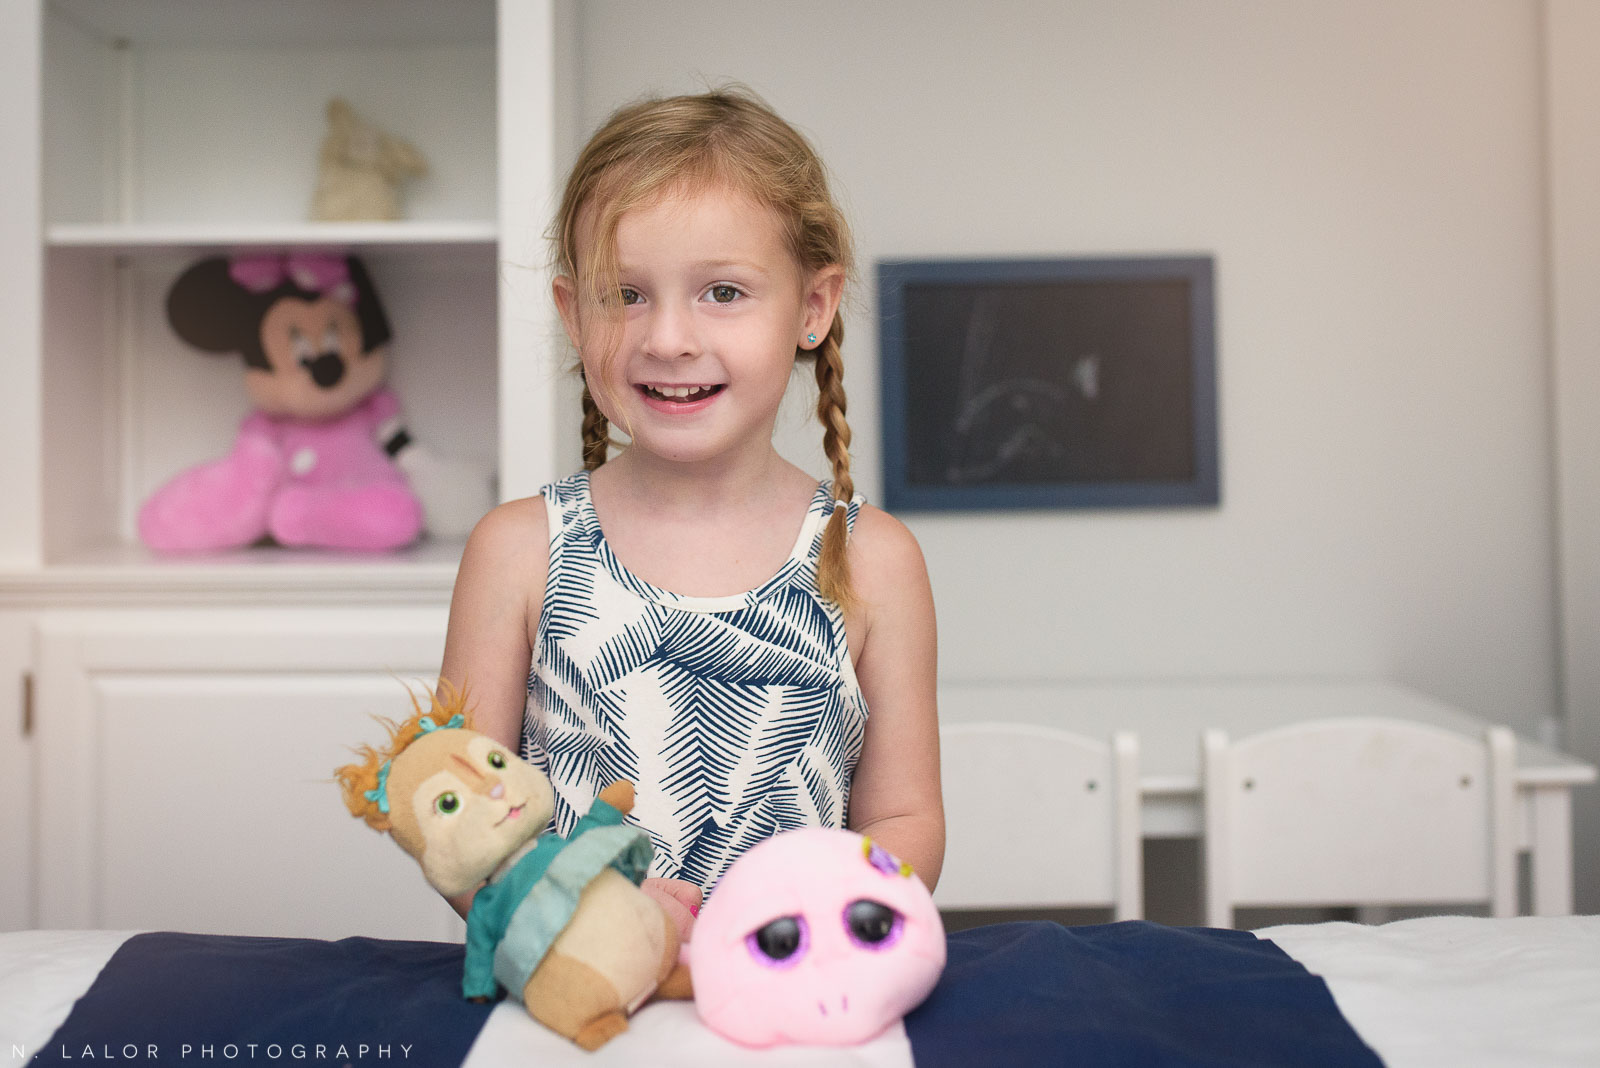 4-year old girl showing off her favorite stuffed toys in her room. Lifestyle portrait by N. Lalor Photography.